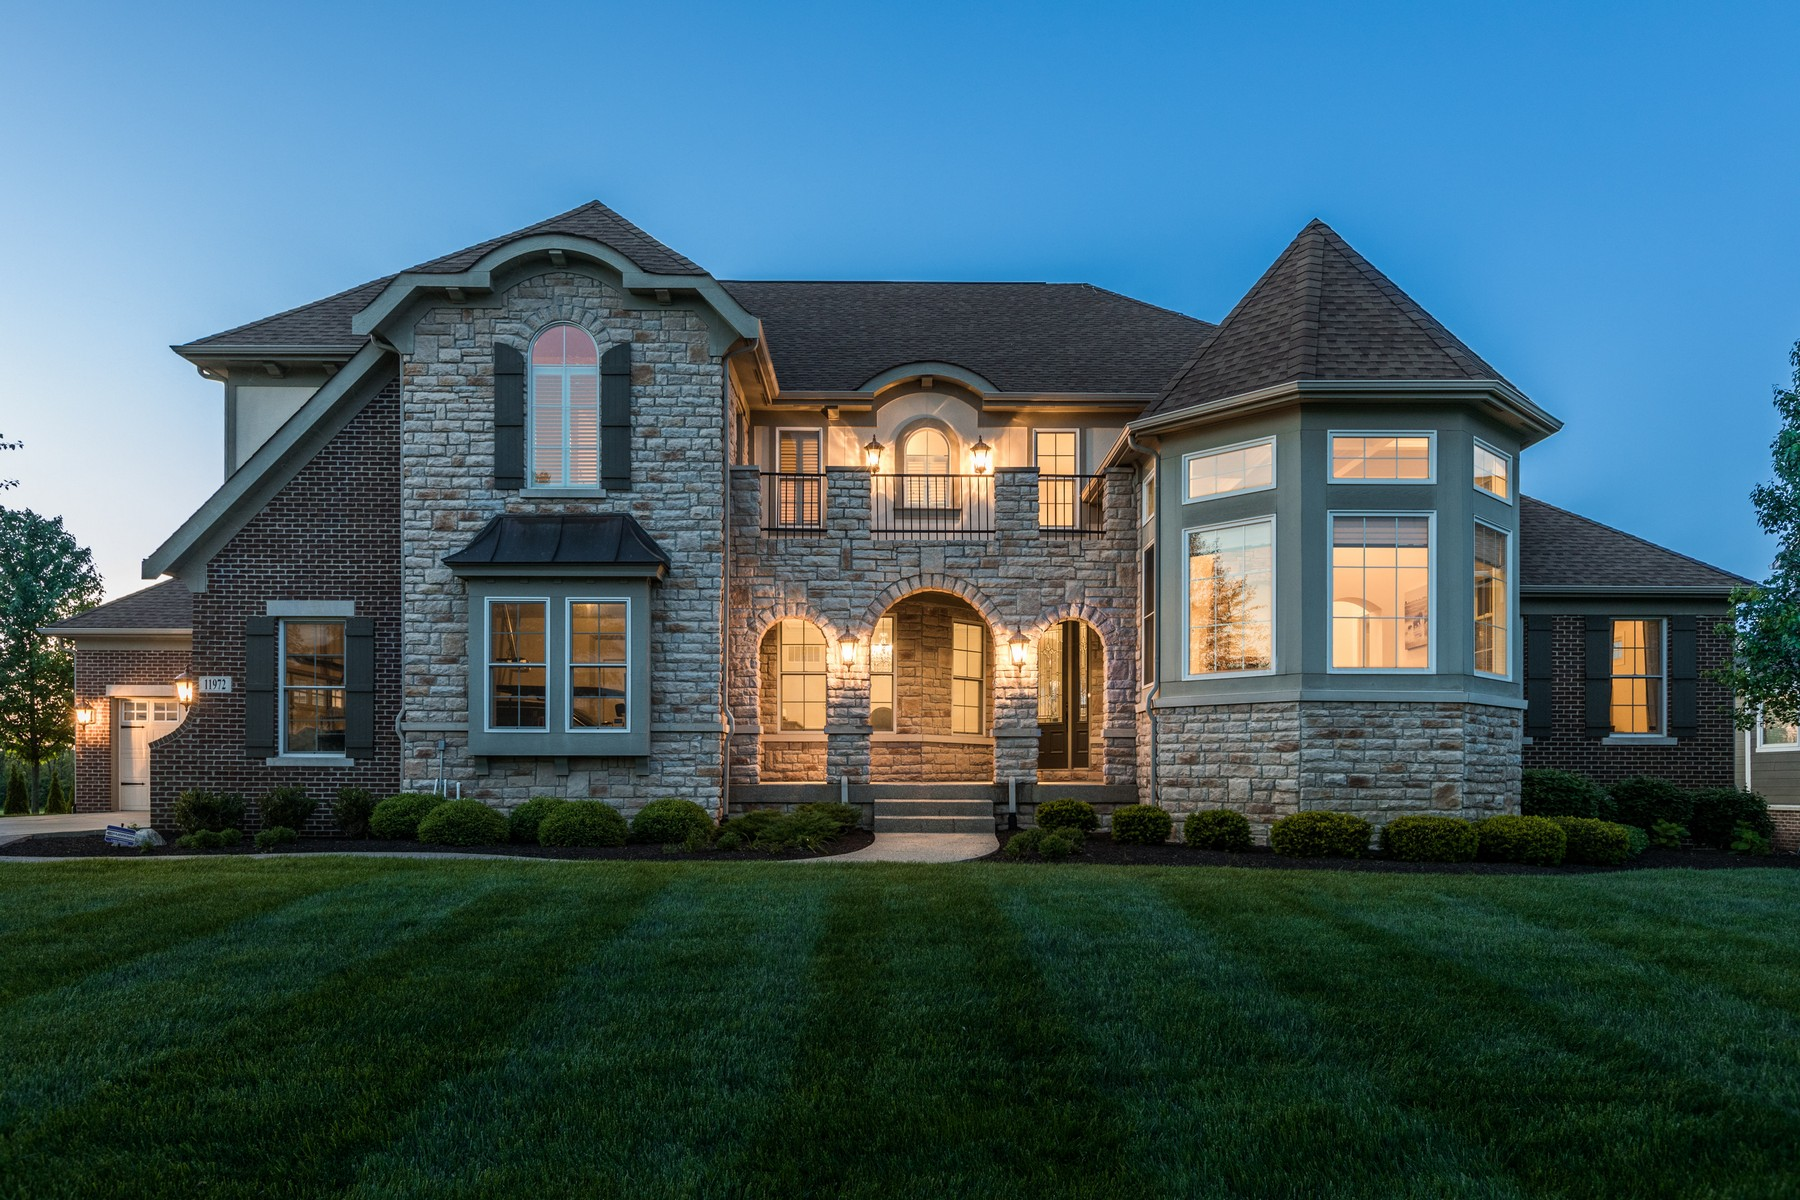 single family homes for Active at Iconic Hawthorn Golf Course Setting 11972 Hawthorn Ridge Fishers, Indiana 46037 United States